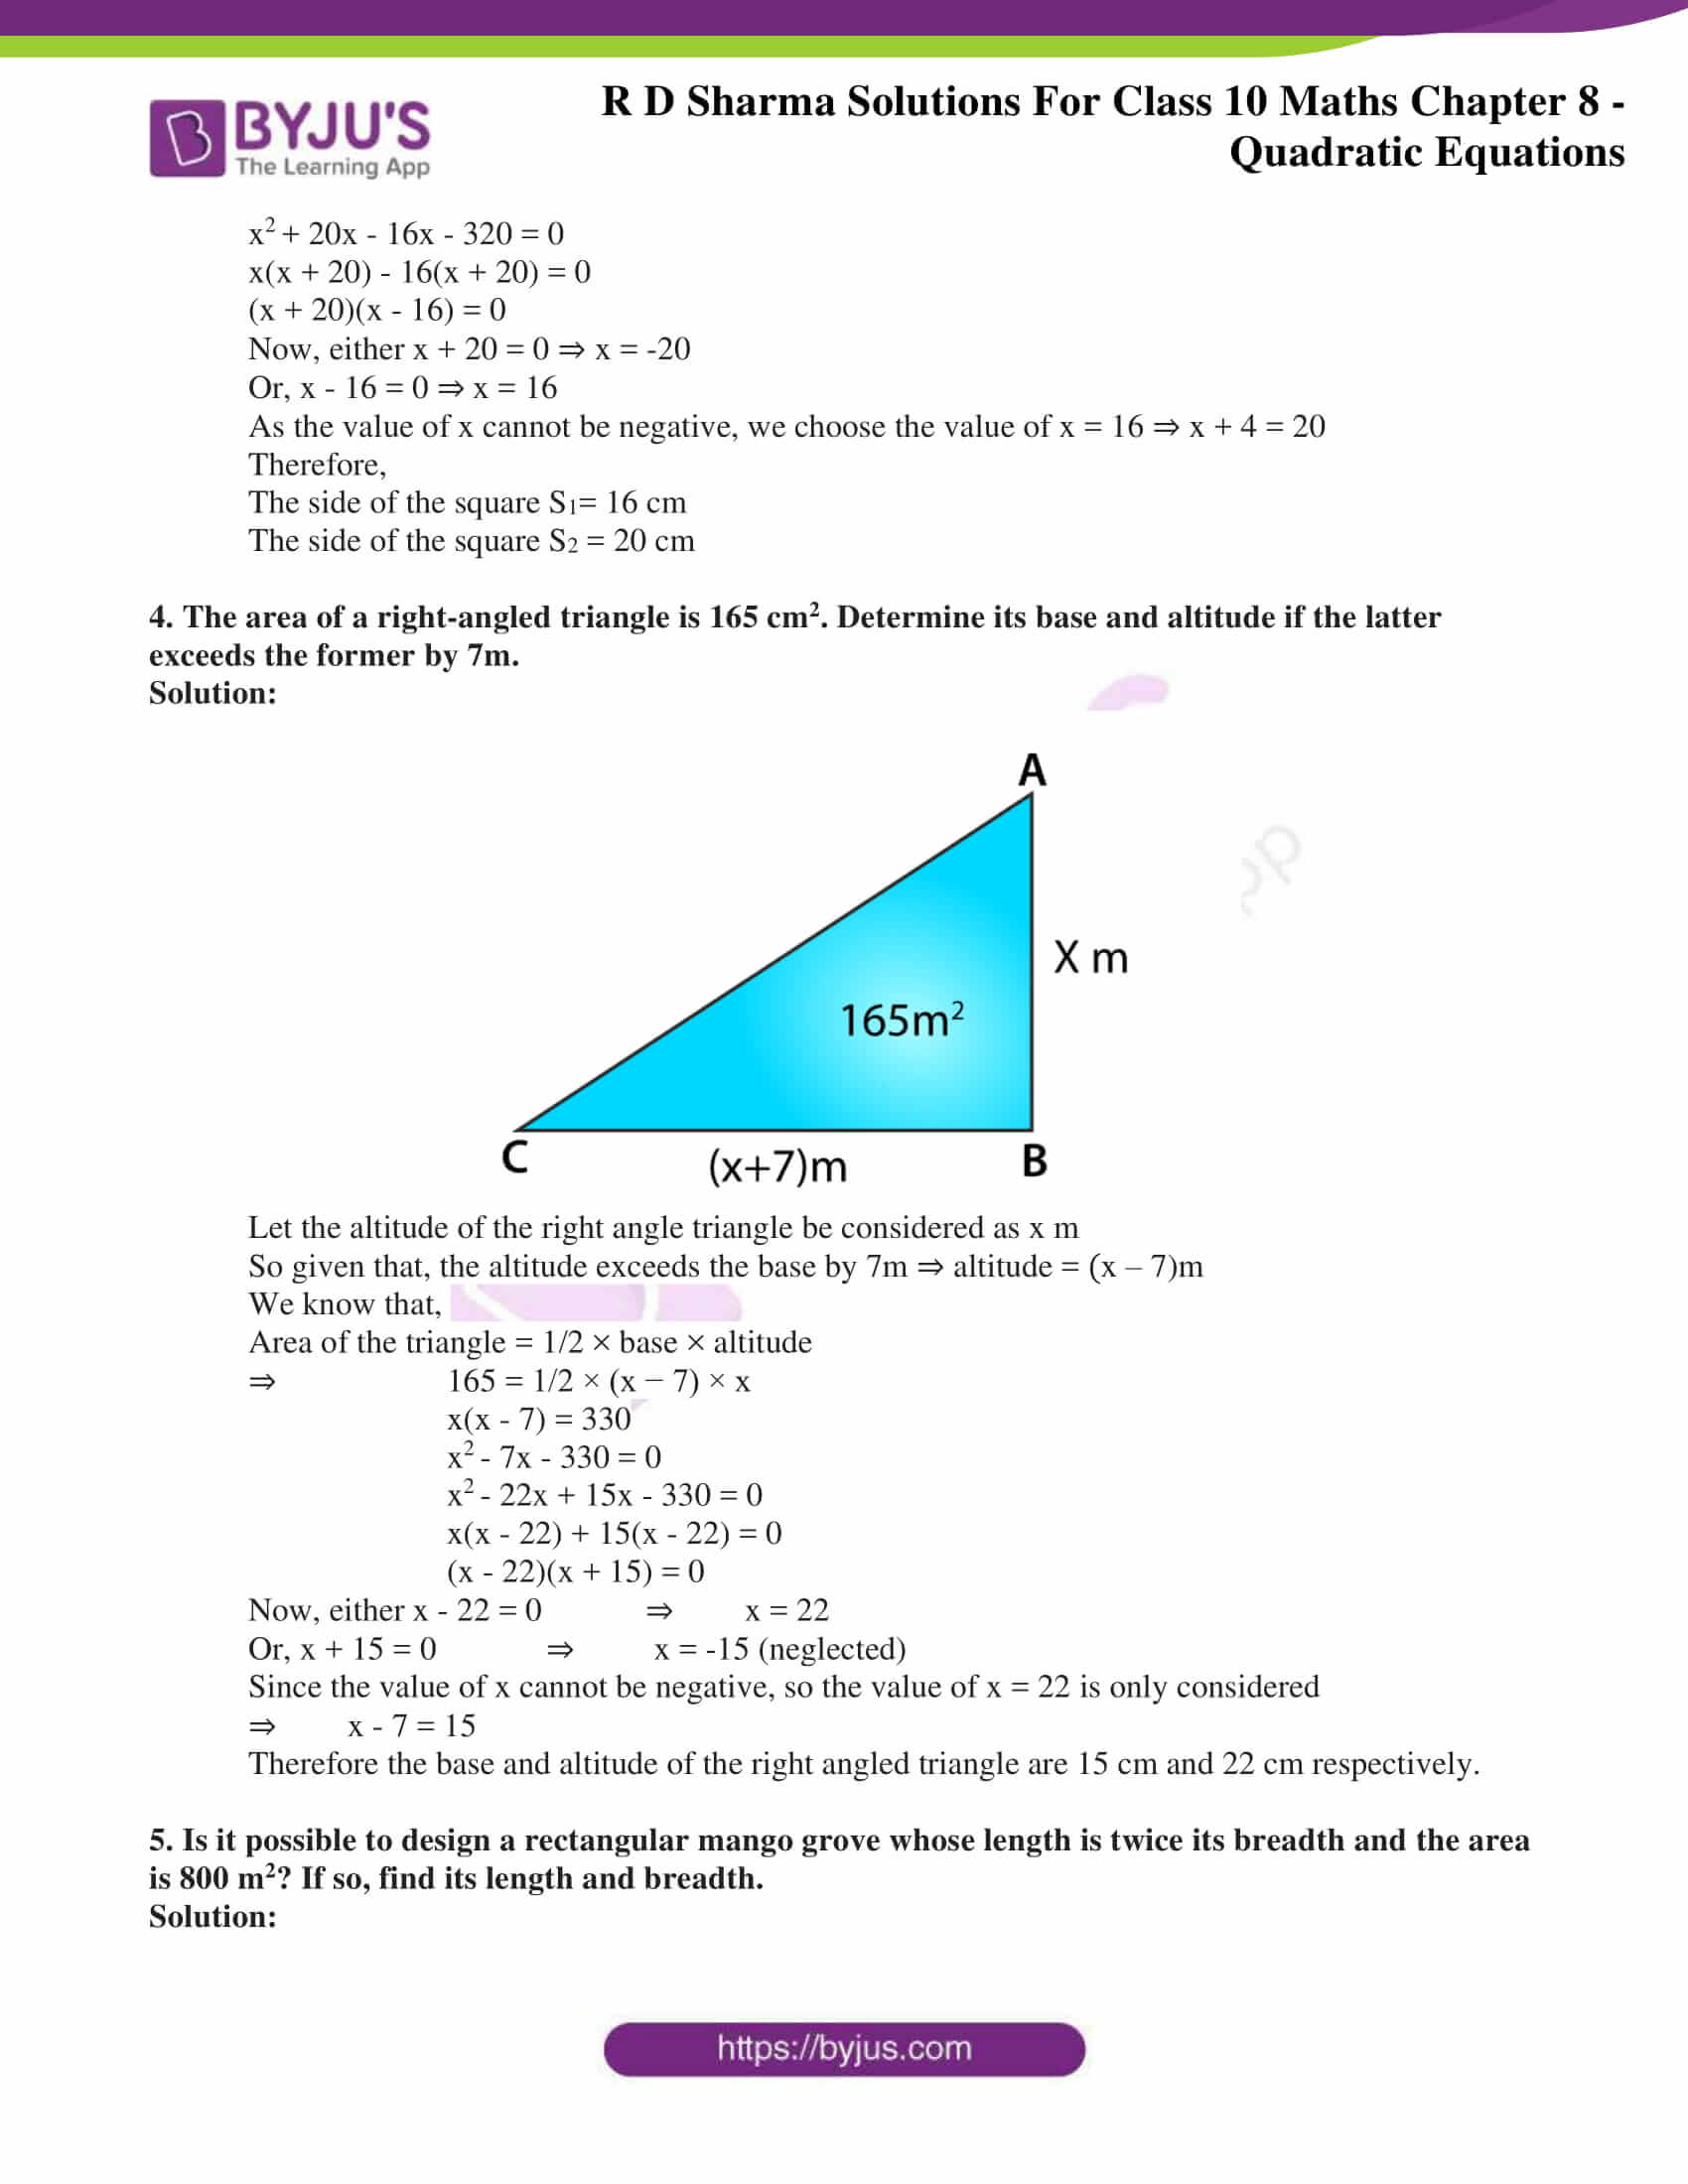 RD Sharma Solutions for Class 10 Chapter 8 Quadratic Equations Exercise 8.11 68